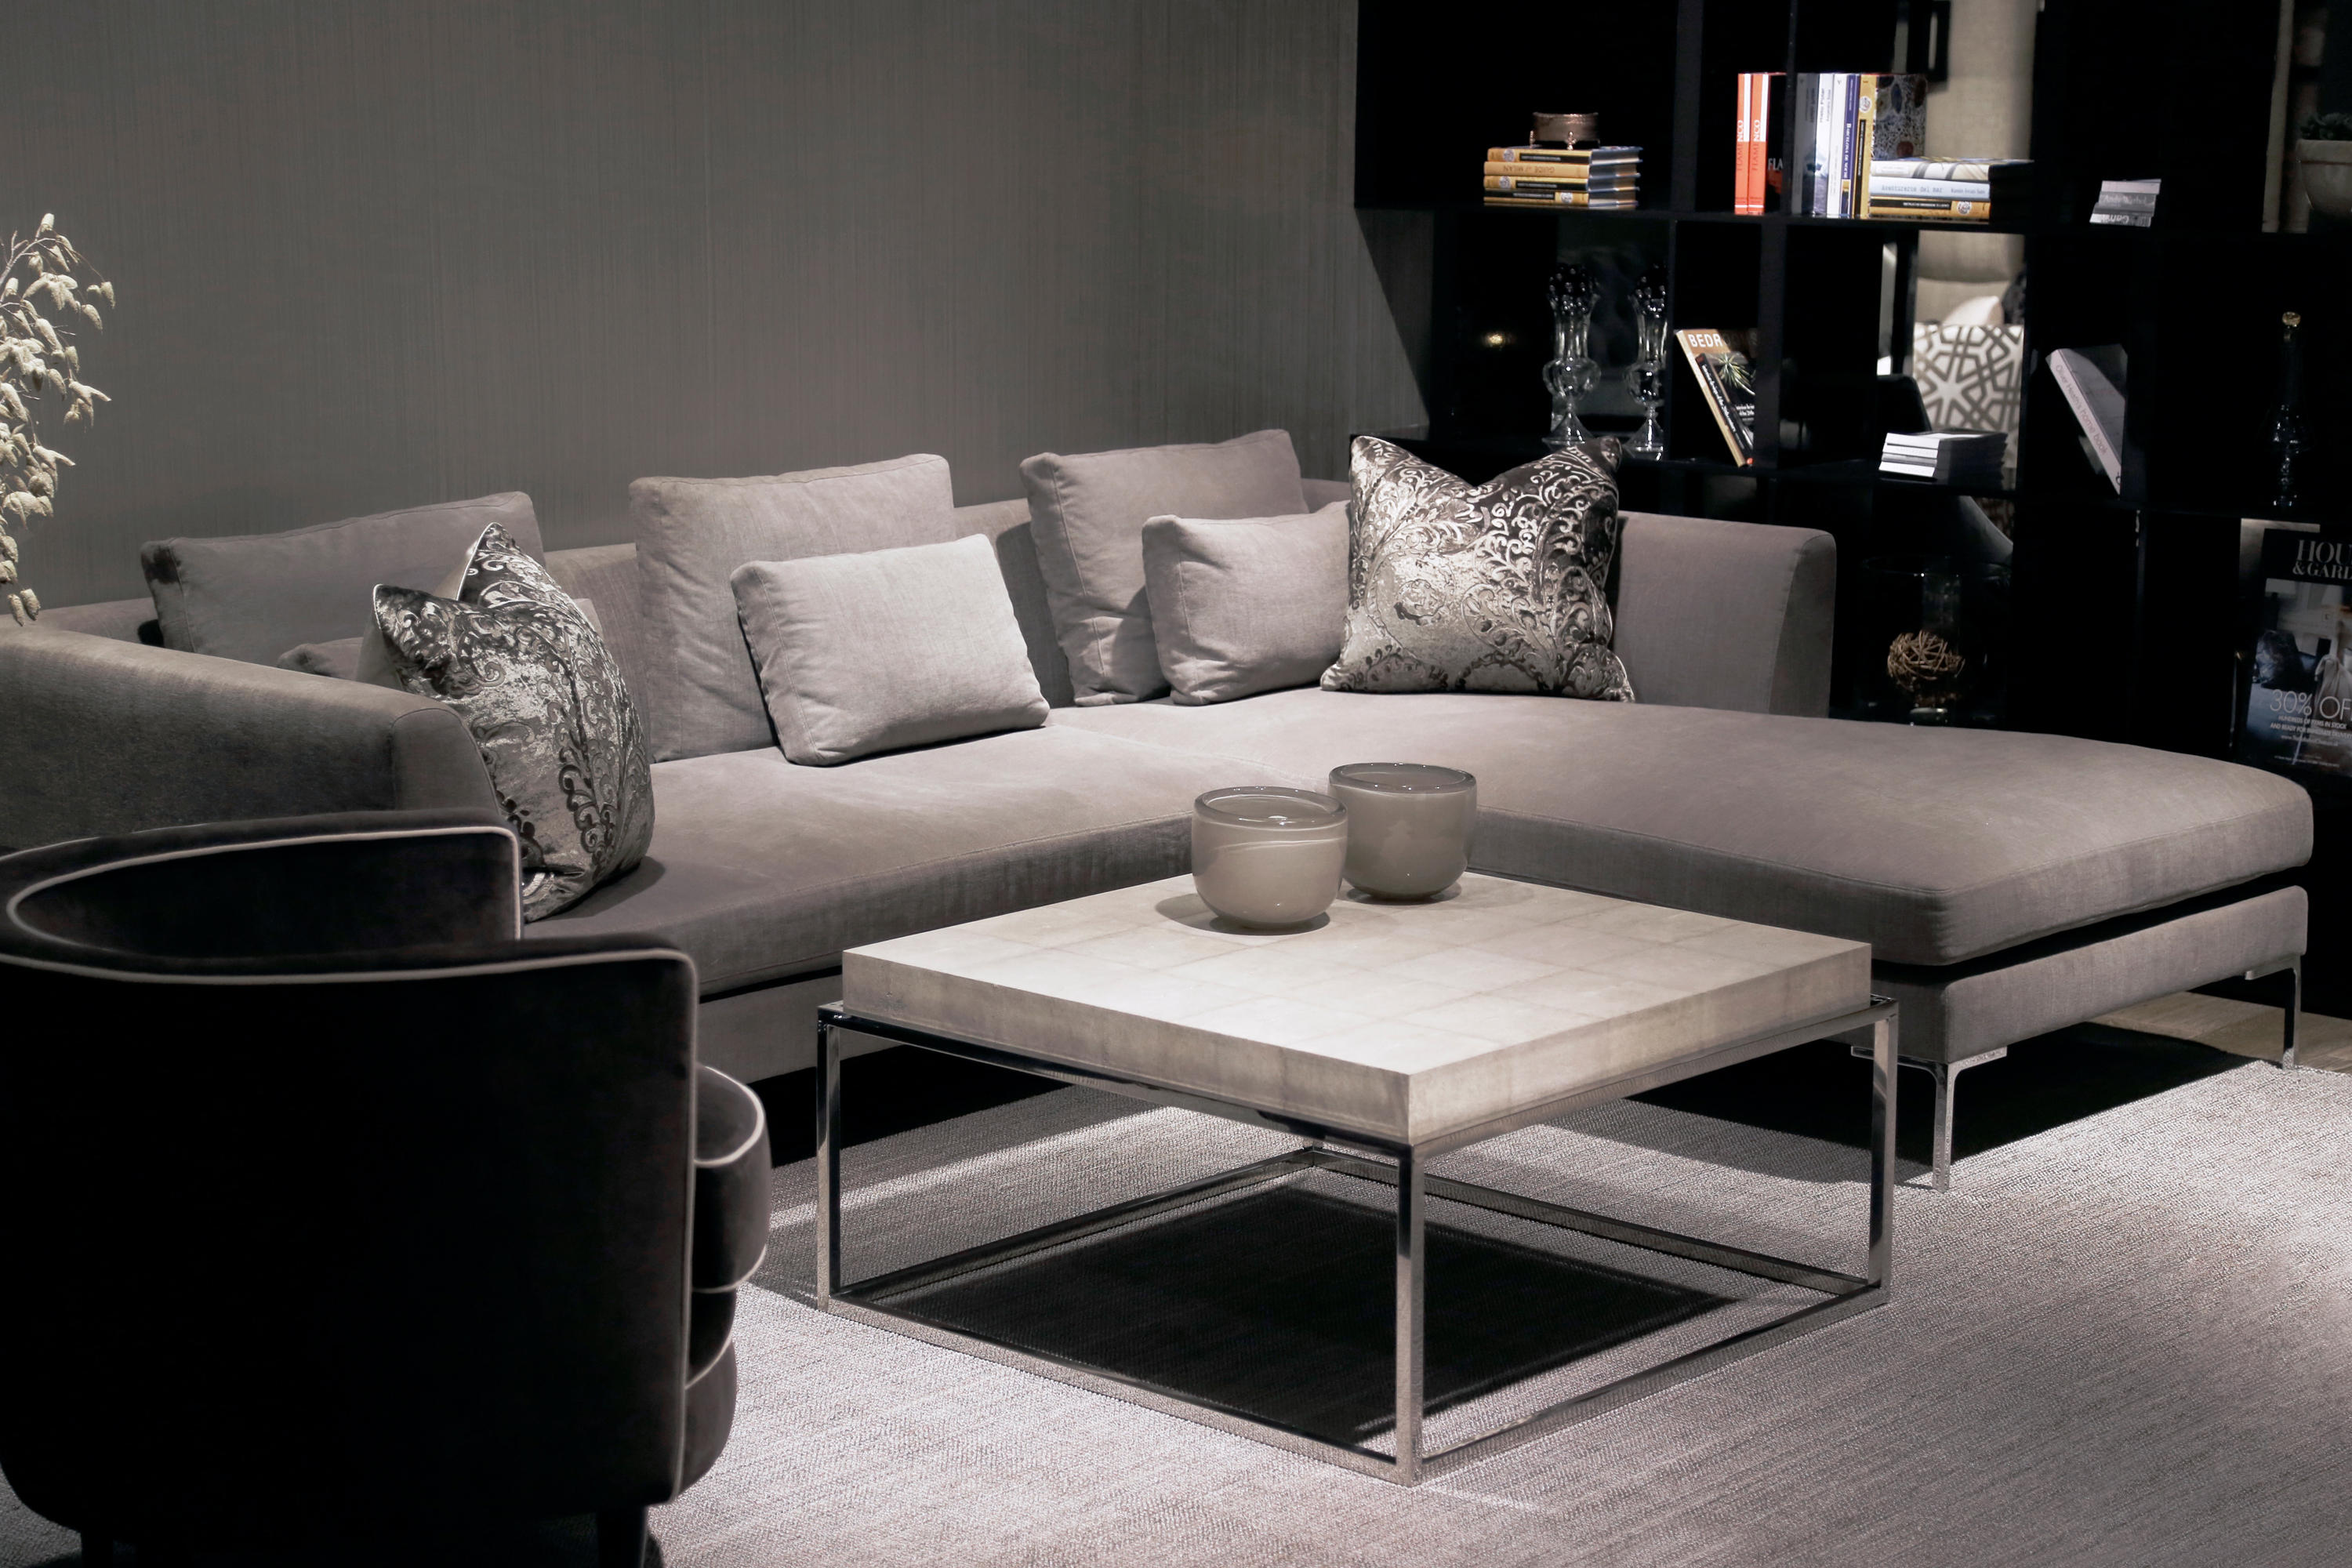 PICASSO SOFA Lounge sofas from The Sofa & Chair pany Ltd